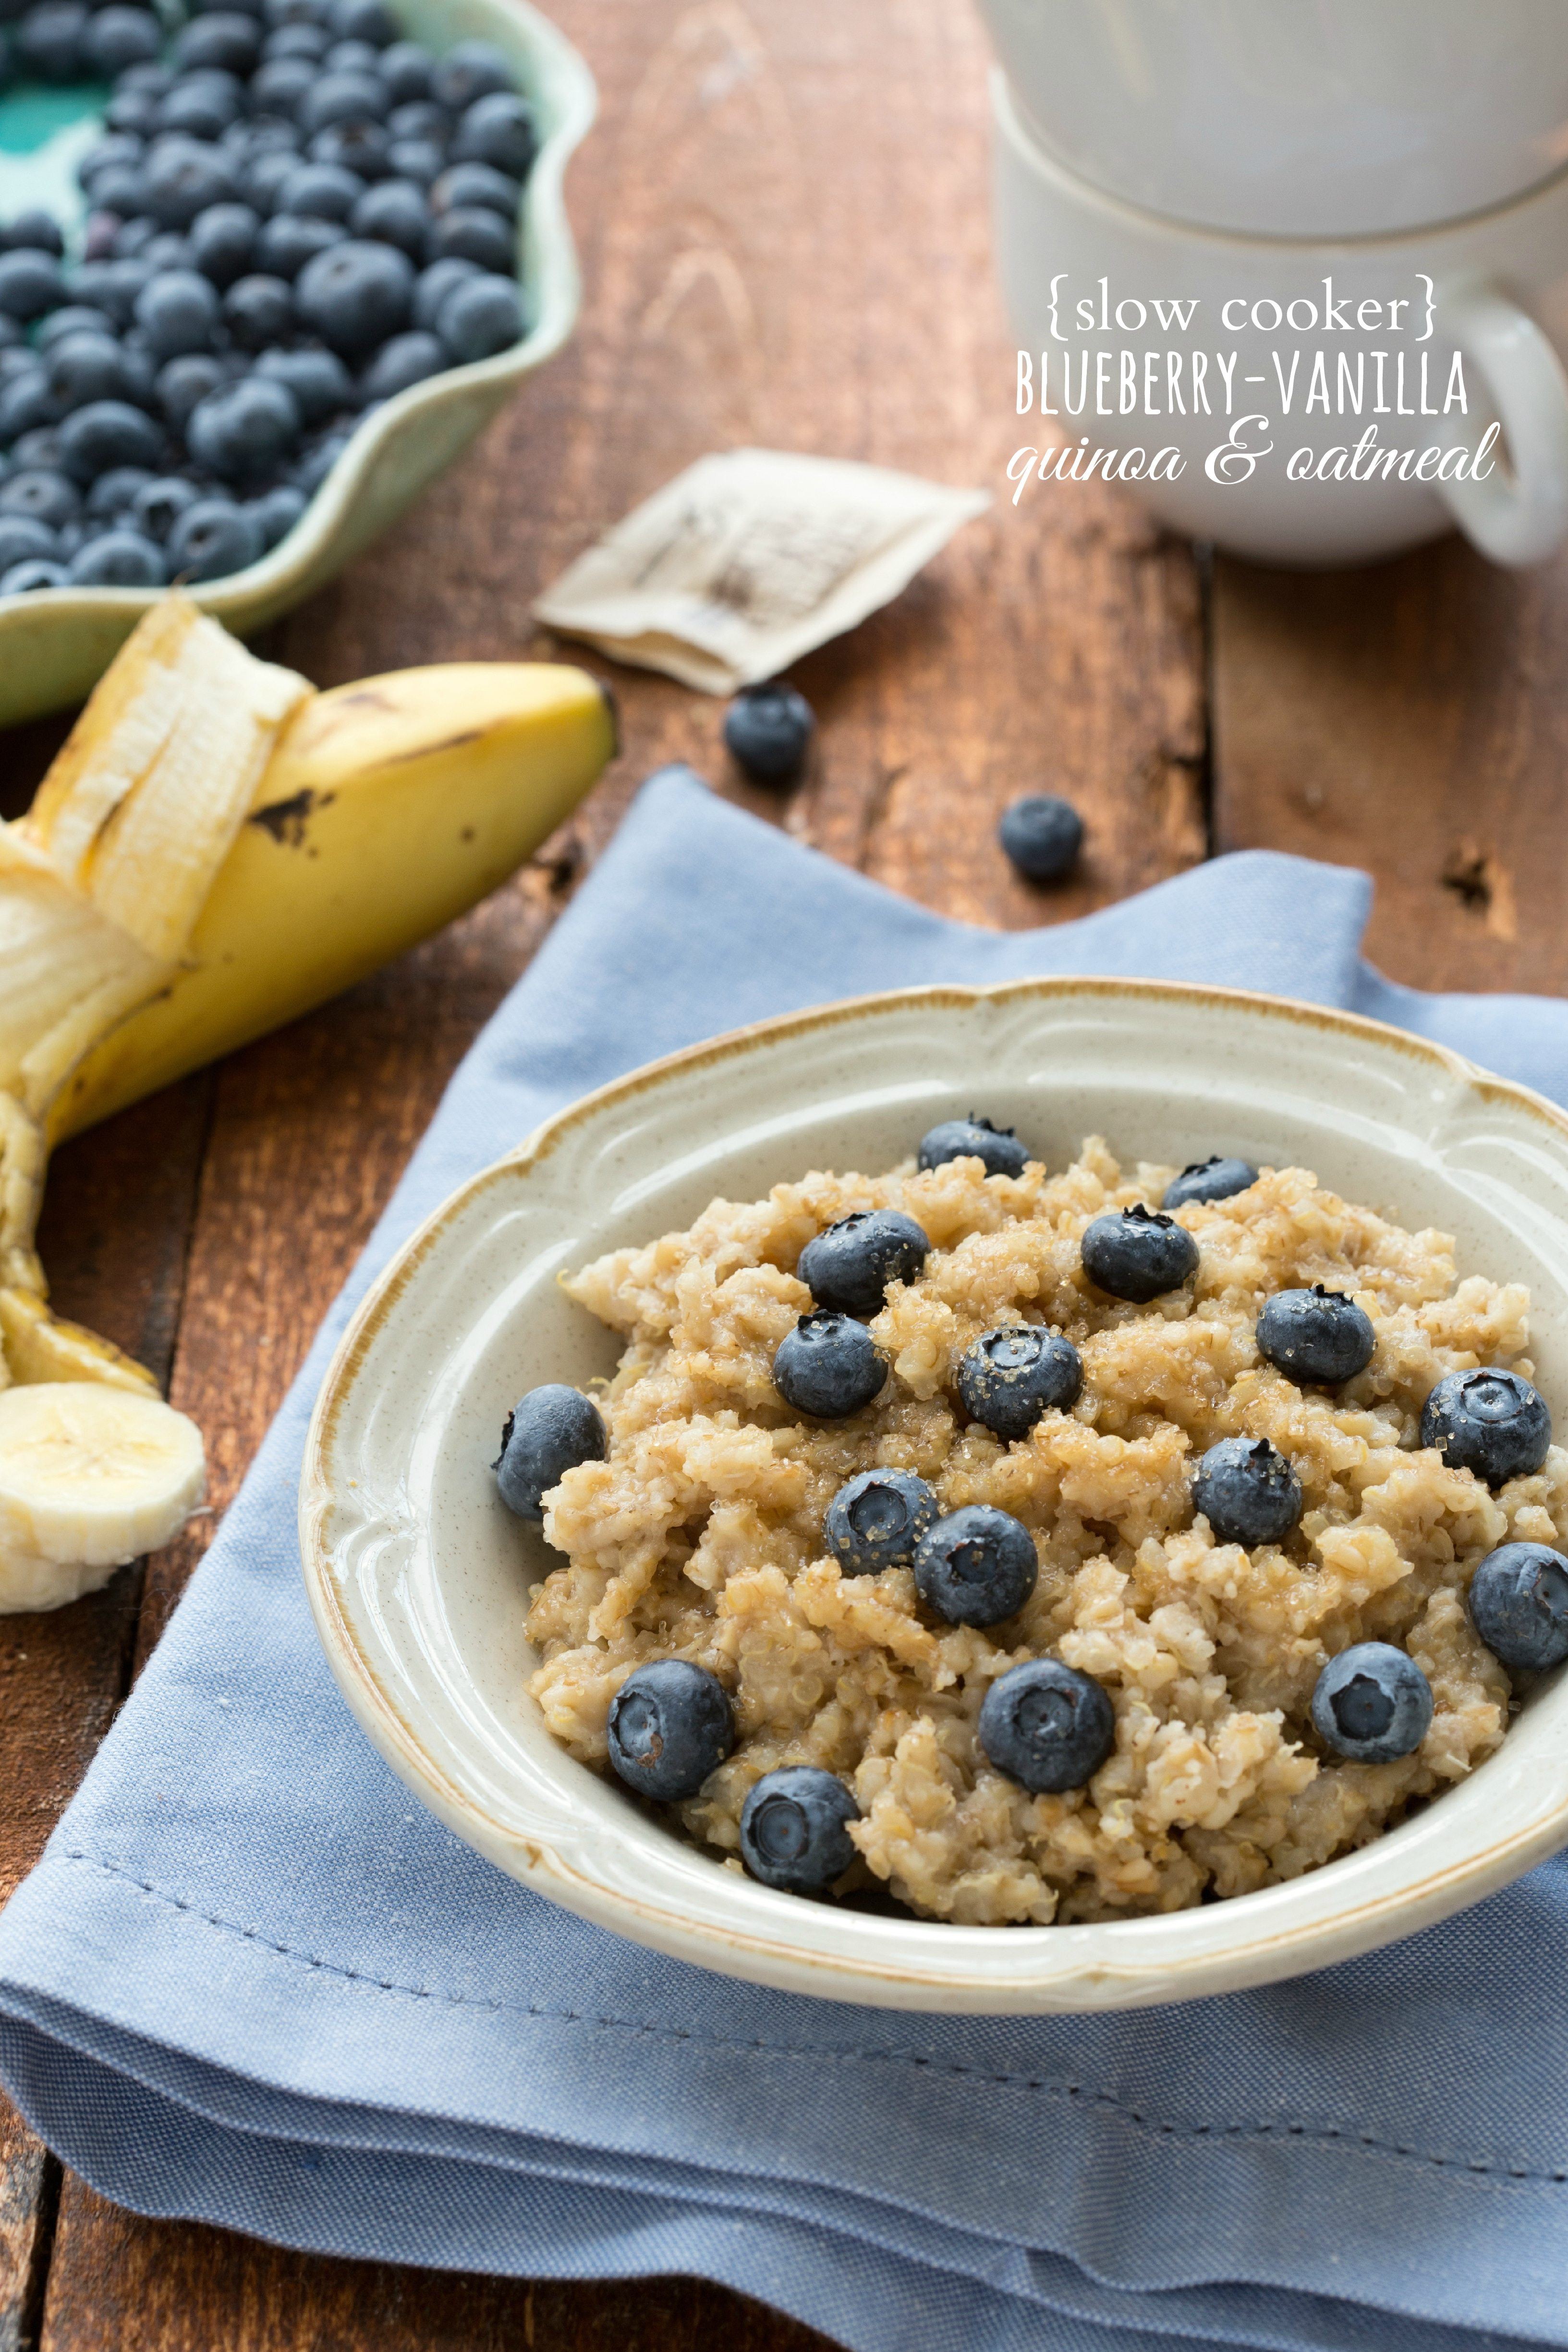 Overnight Slow Cooker Quinoa And Oats  So Good And Healthy! I Via  Chelseasmessyapron I